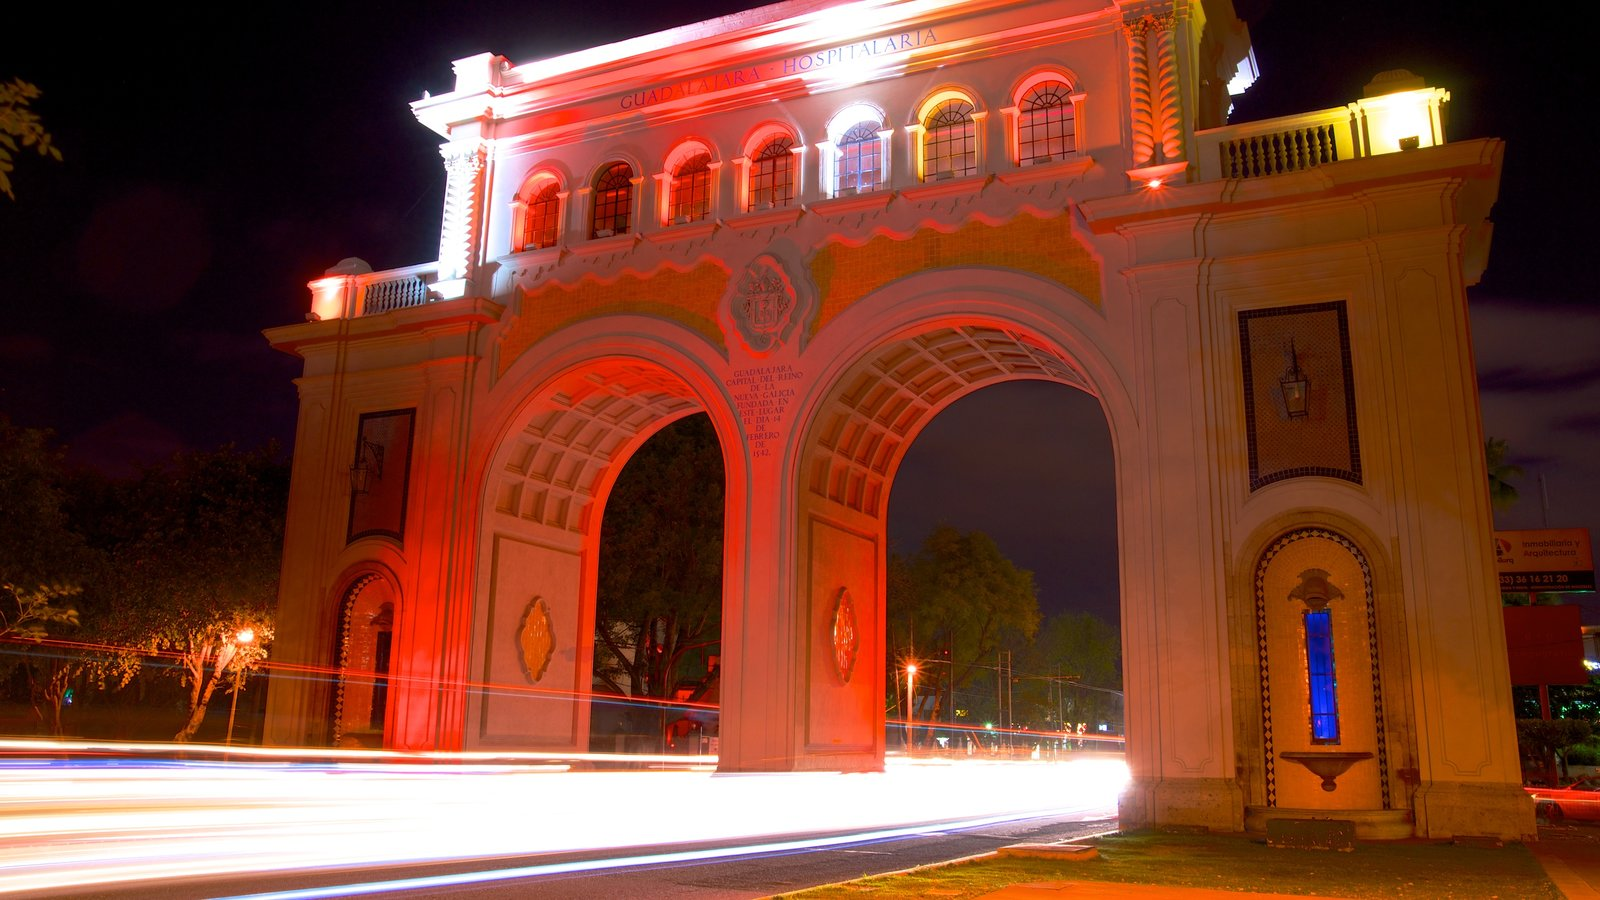 Los Arcos de Guadalajara showing heritage architecture, a monument and night scenes